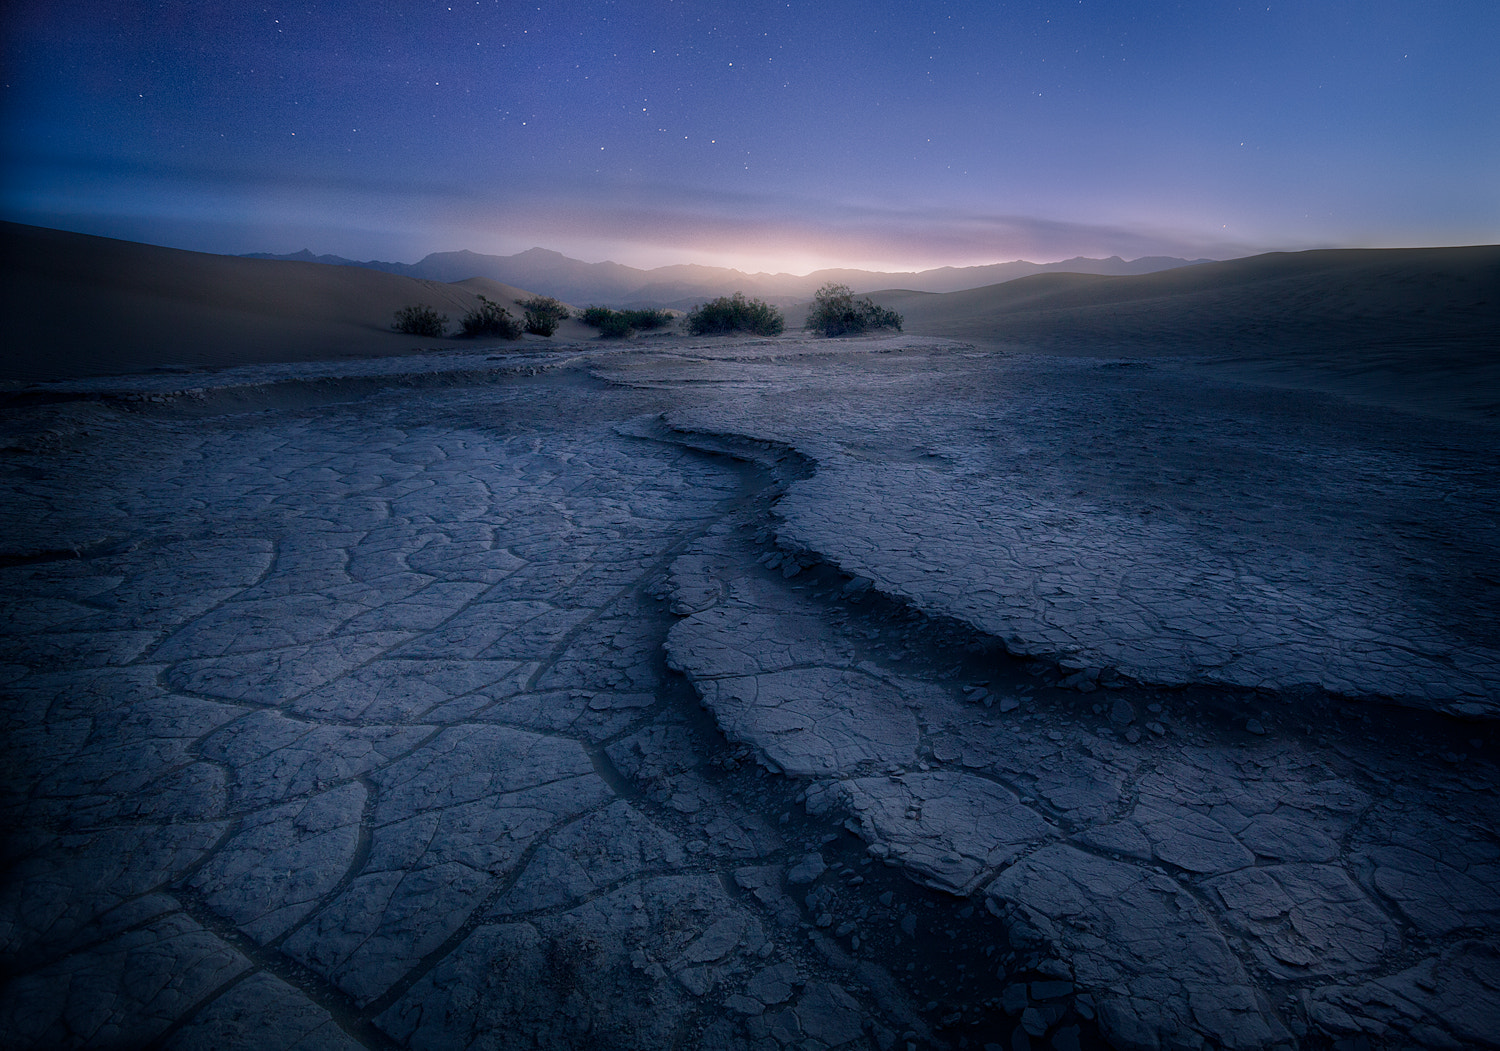 Photograph The Serpent's Scales by Lijah Hanley on 500px